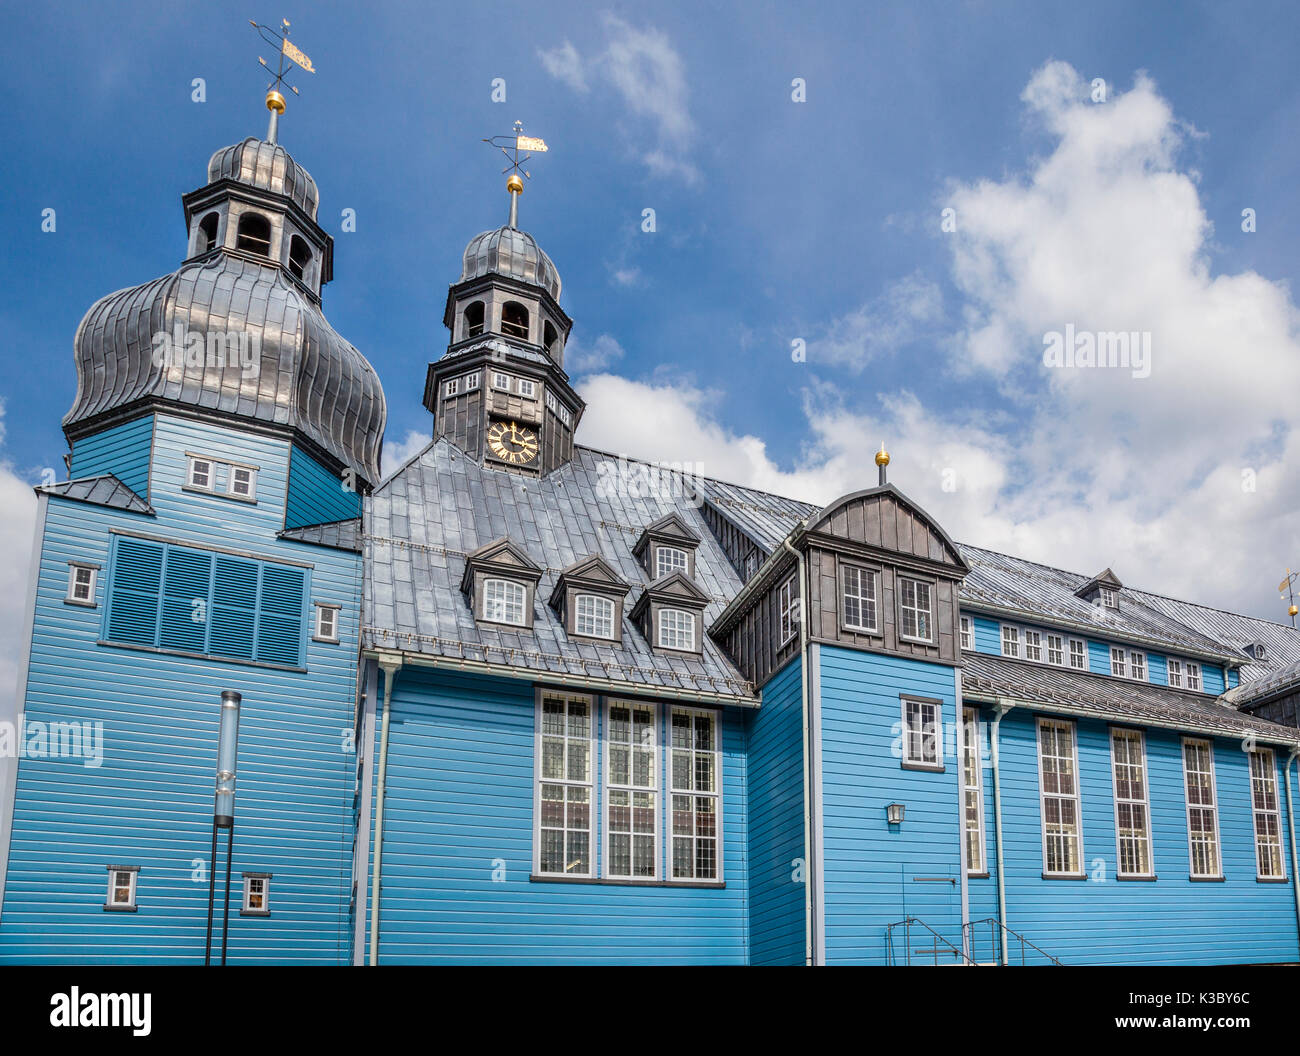 Germany, Lower Saxony, Clausthal-Zellerfeld, view of the Market Church, Marktkirche zum Heiligen Geist, the largest wooden church in Germany - Stock Image